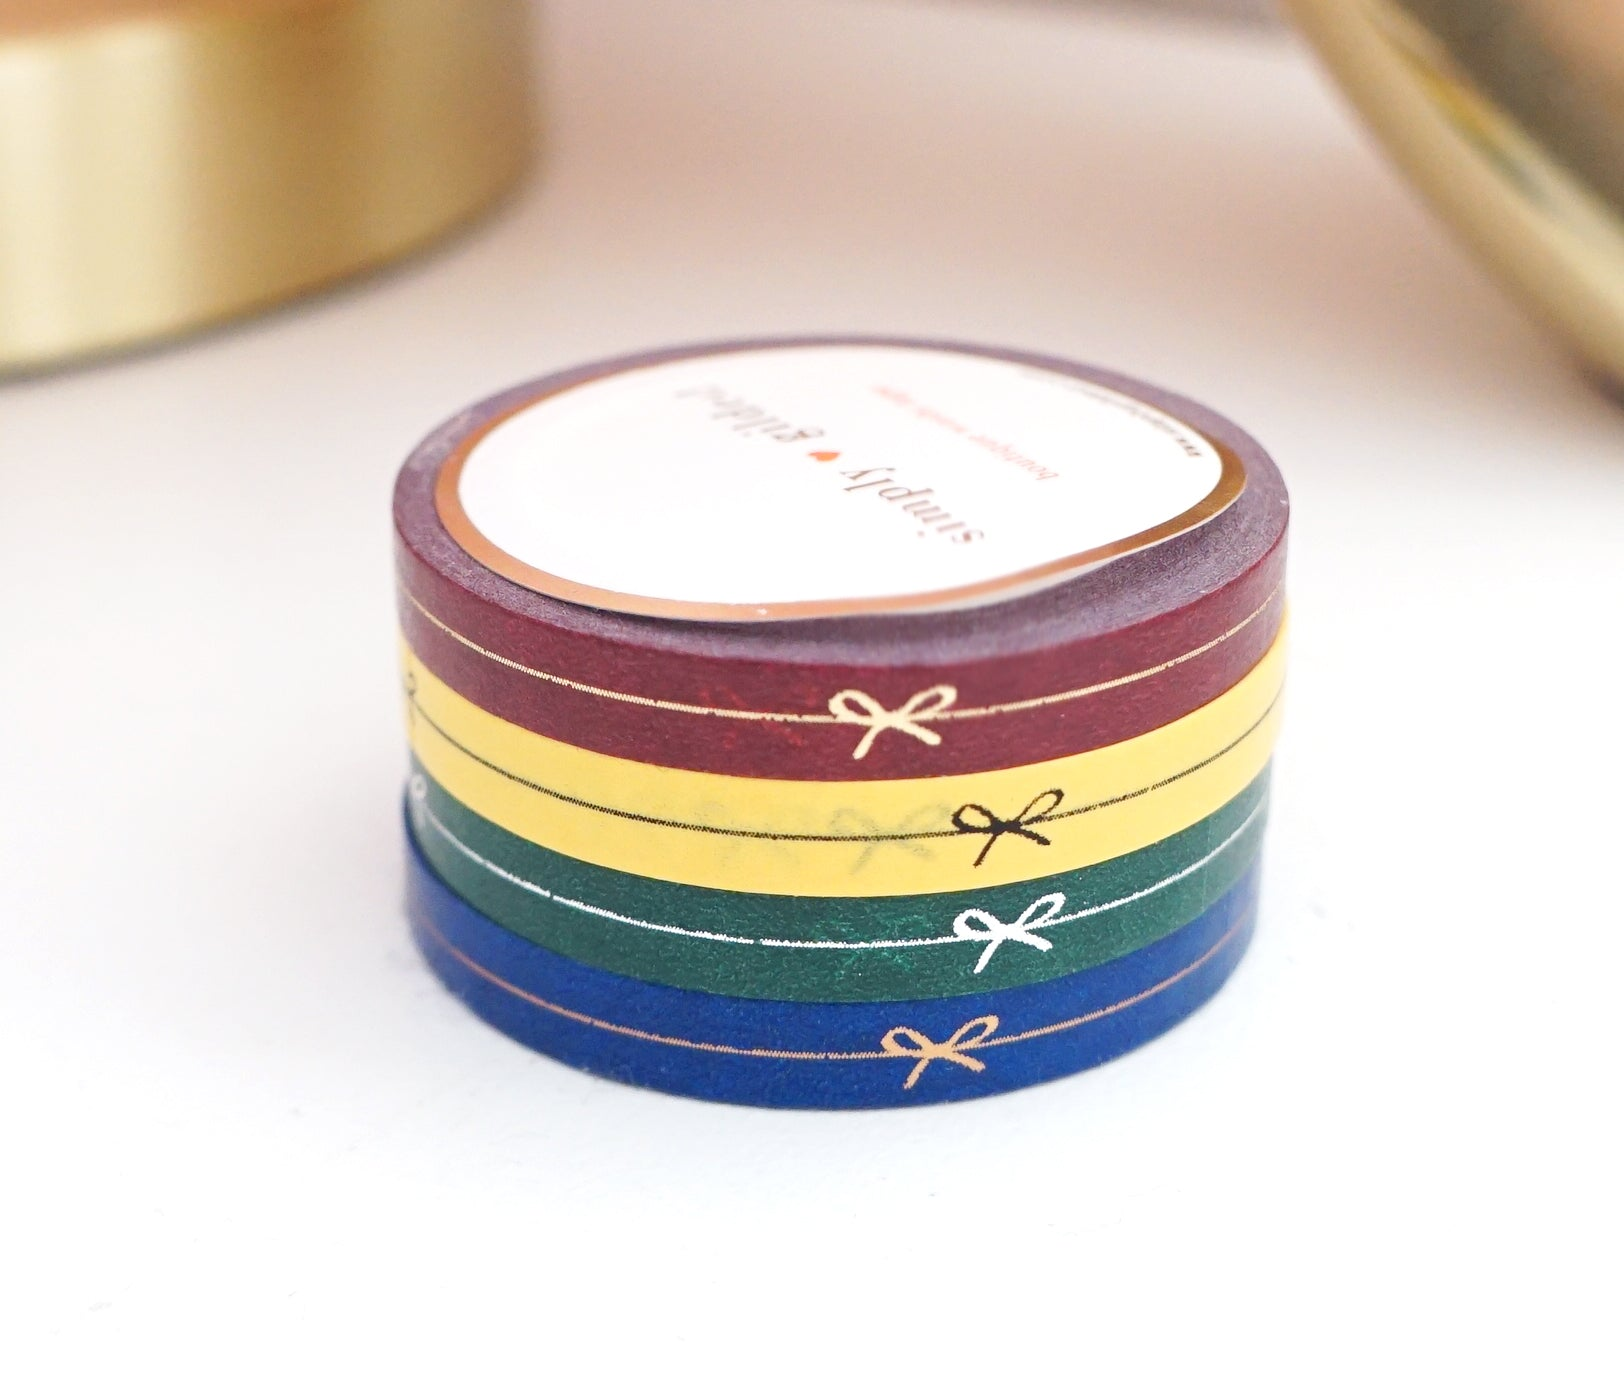 PERFORATED WASHI TAPE 6mm set of 4 - Perforated NS REMIX BOW LINE + gold/black/silver/rose gold (New Release)